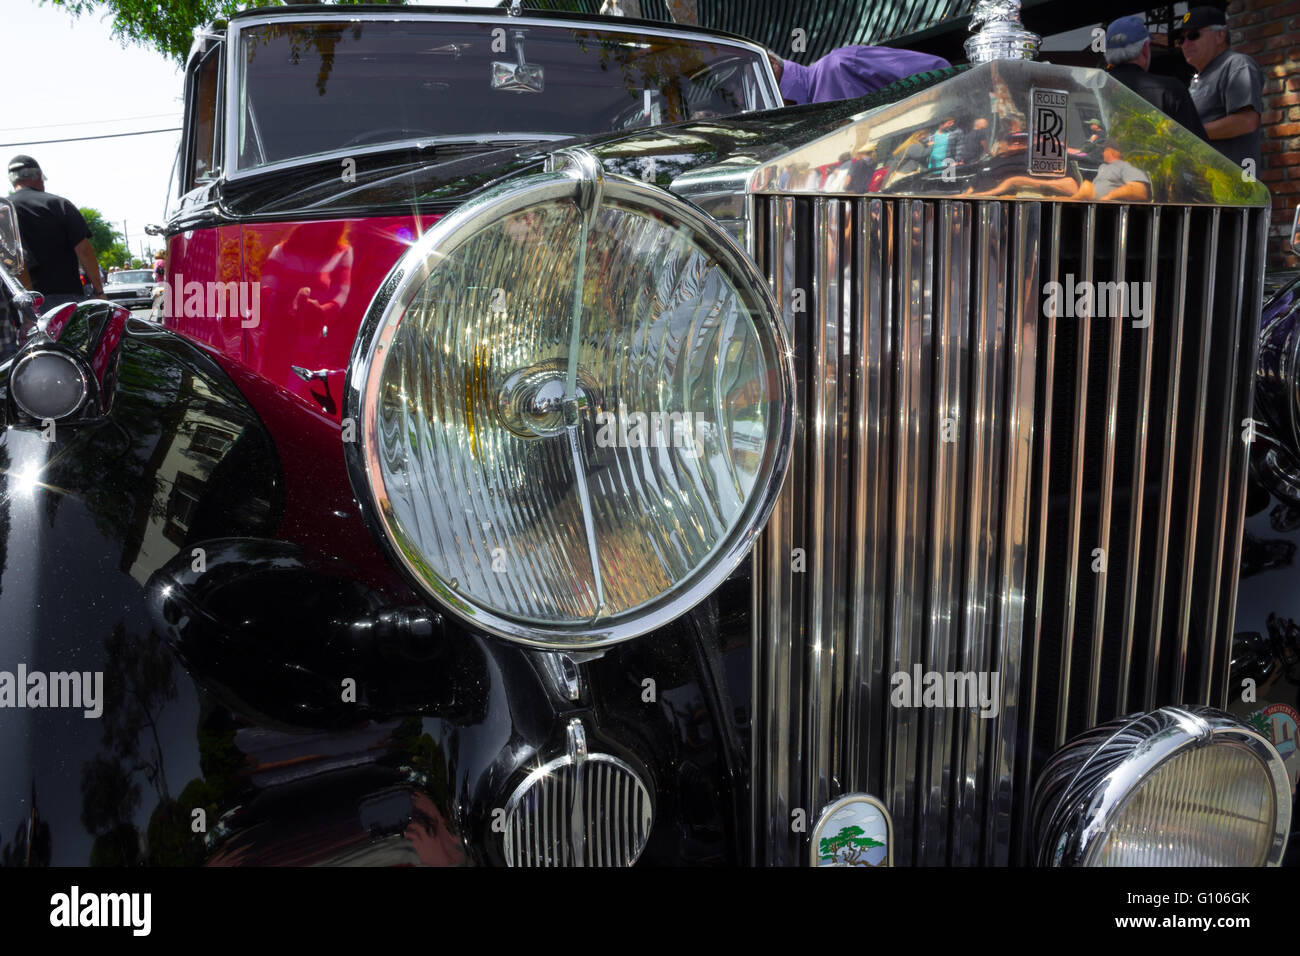 1948 classic Rolls Royce with magenta and black colors shown from the front - Stock Image